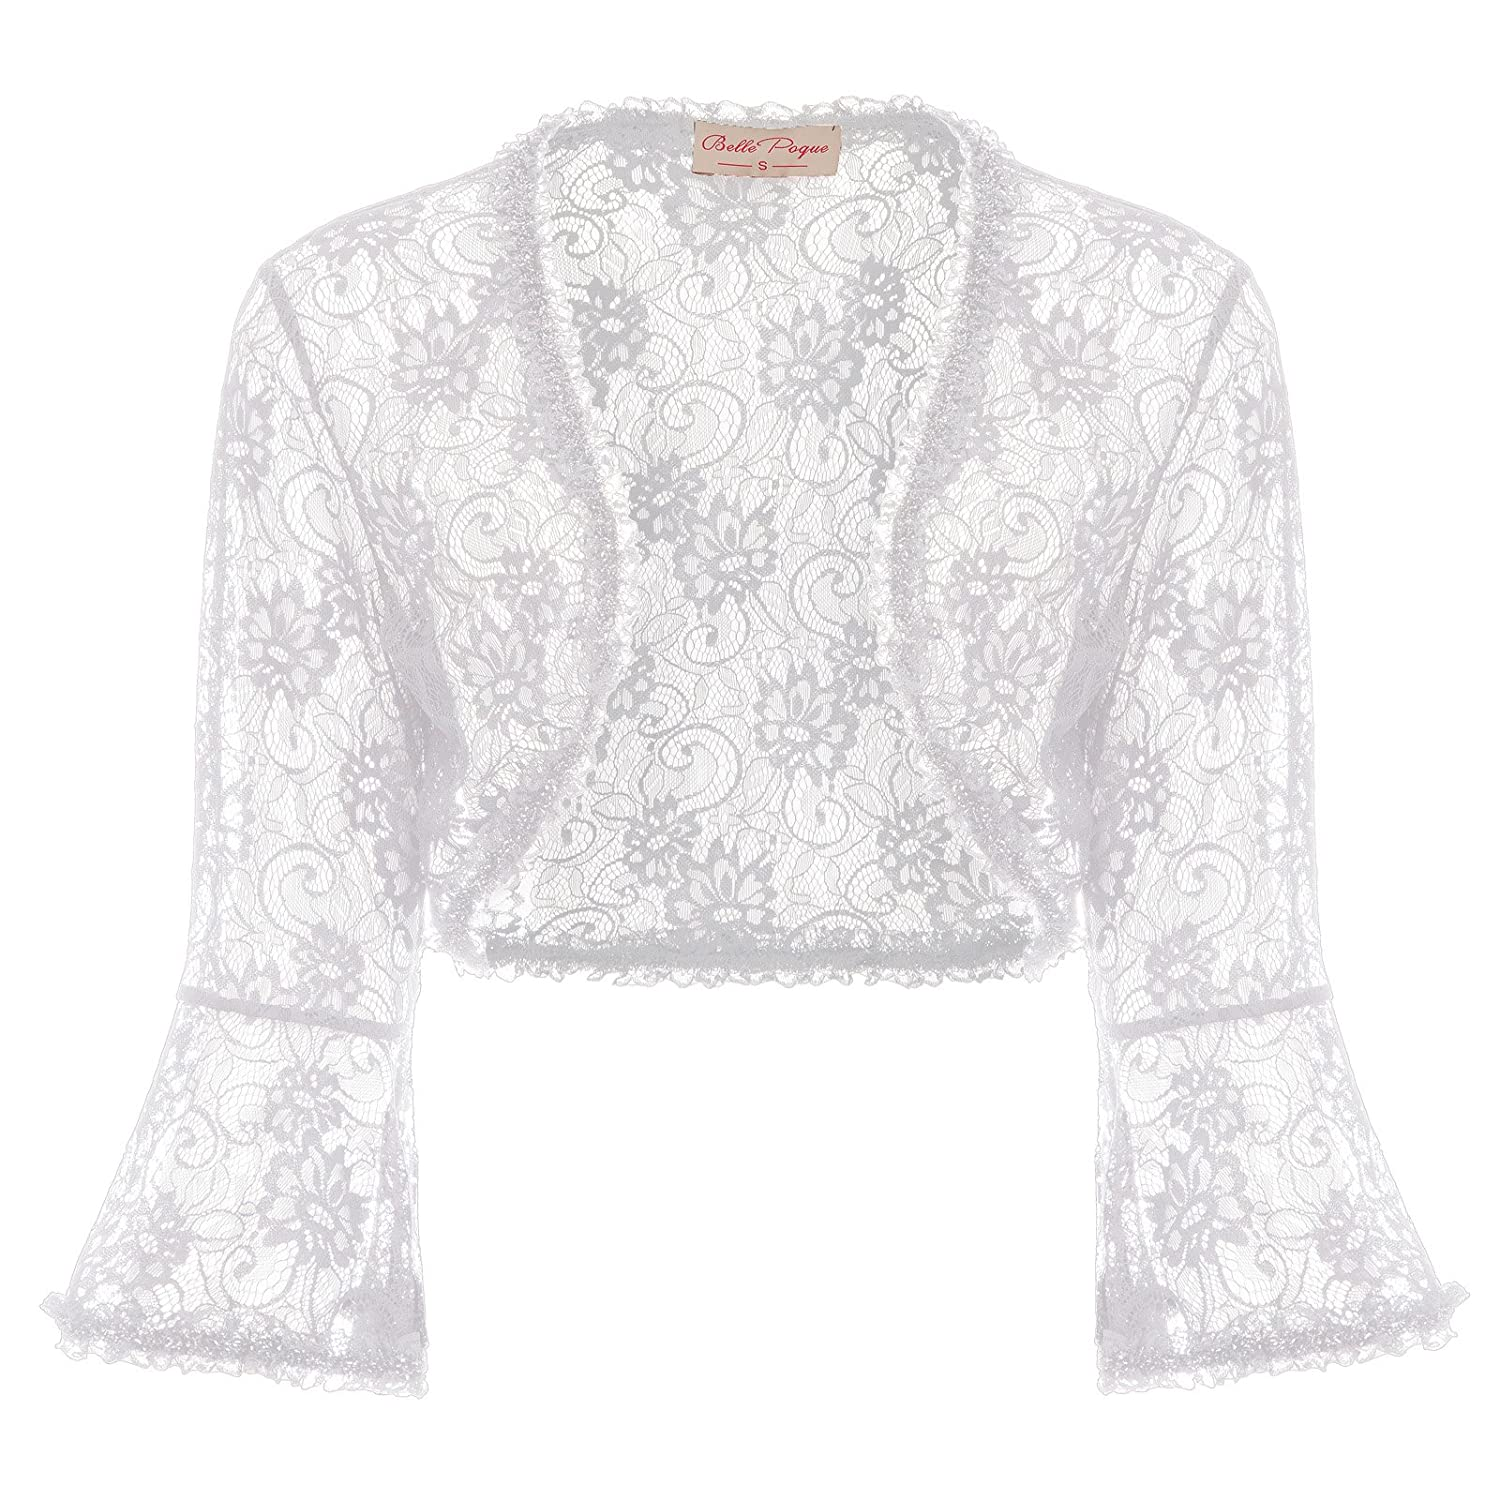 Belle Poque Ladies Elegant 3/4 Sleeve Lace Wedding Bridesmaid Shrug Bolero Cardigan Top GF593